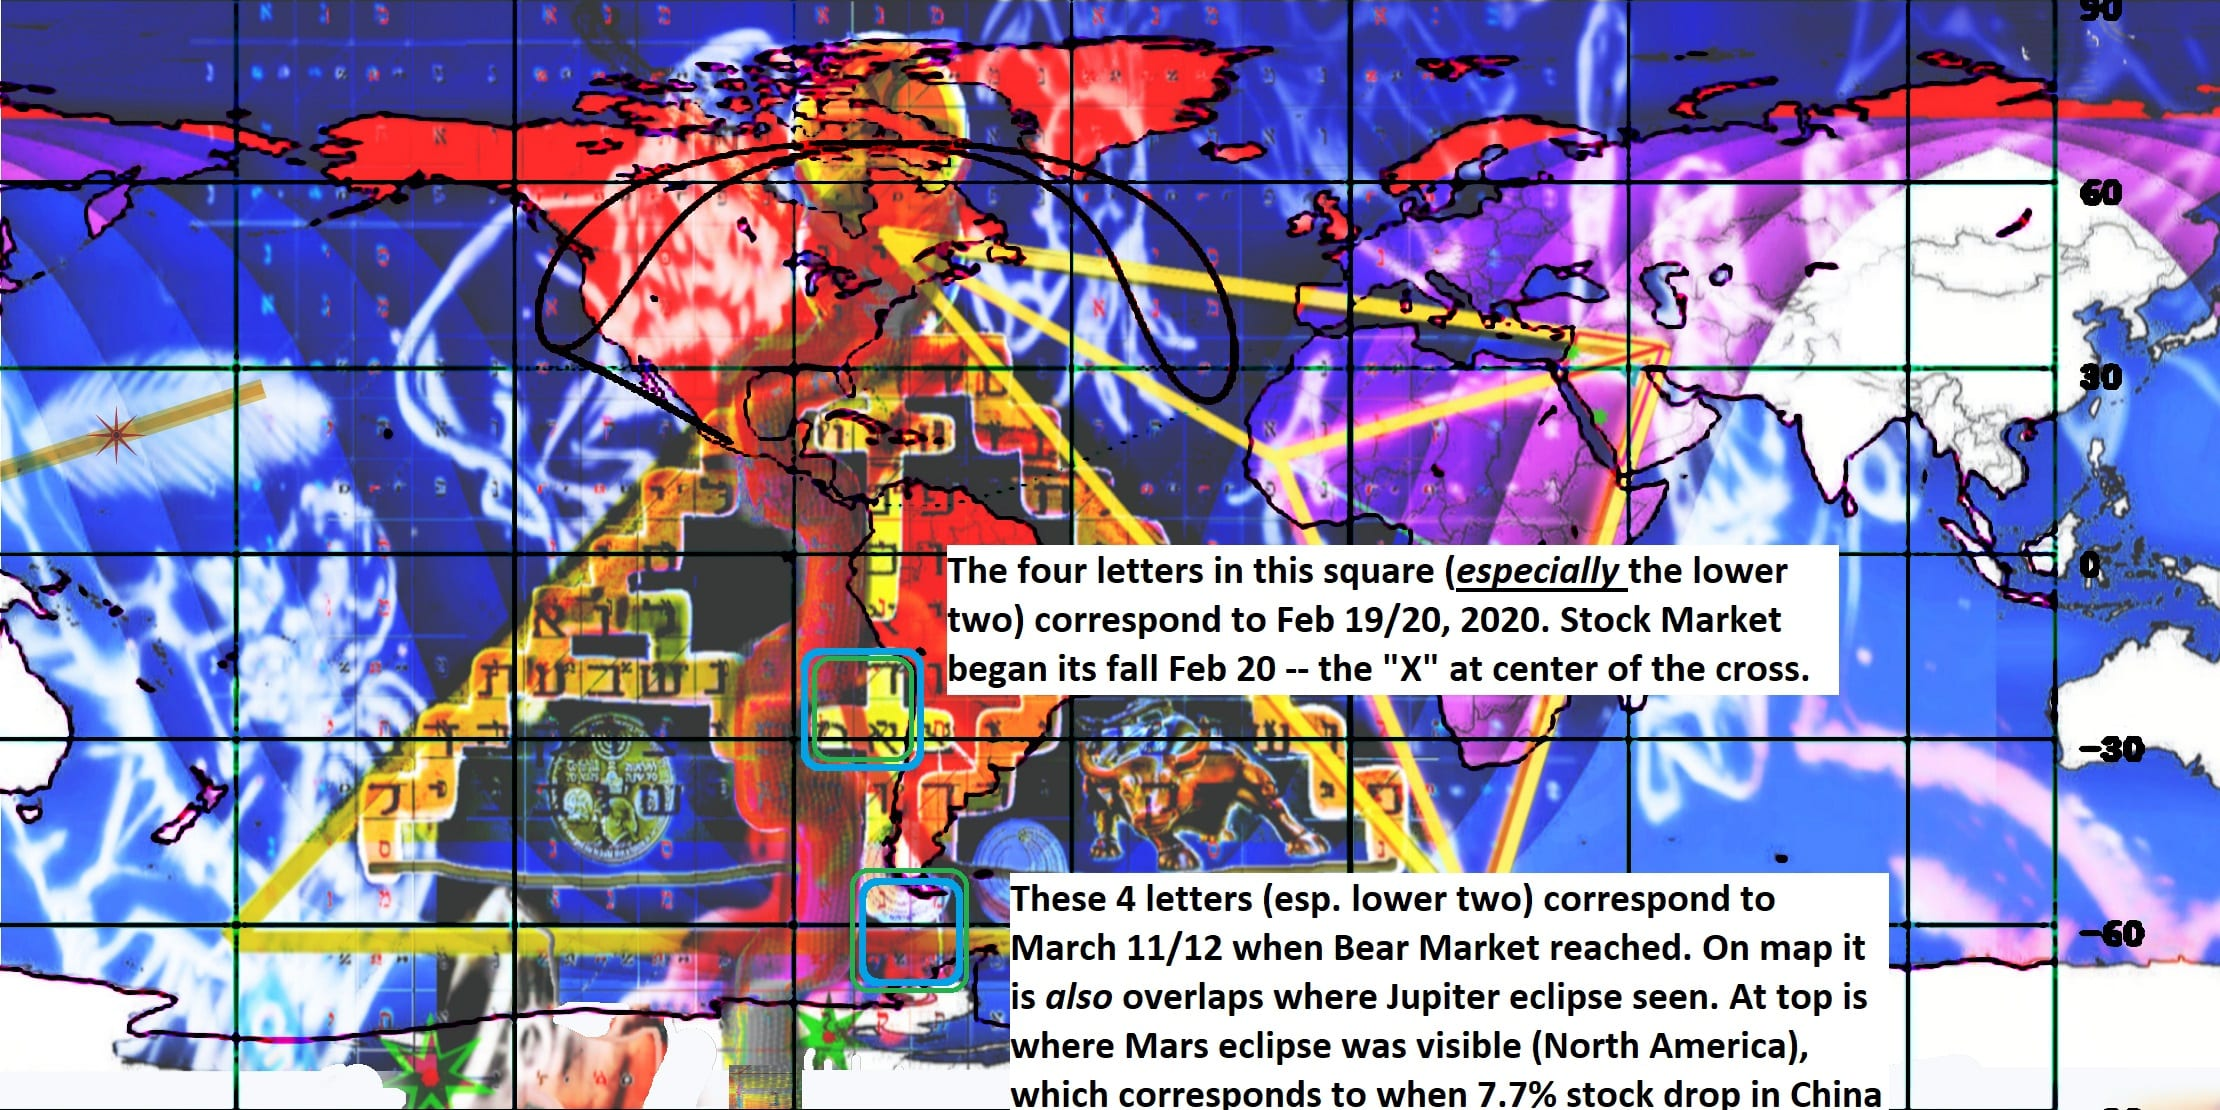 Prophetic Map showing location where Mars and Jupiter eclipse behind moon were visible that occurred one day apart -- just before Stock Market collapsed -- and was posted two days before the collapse